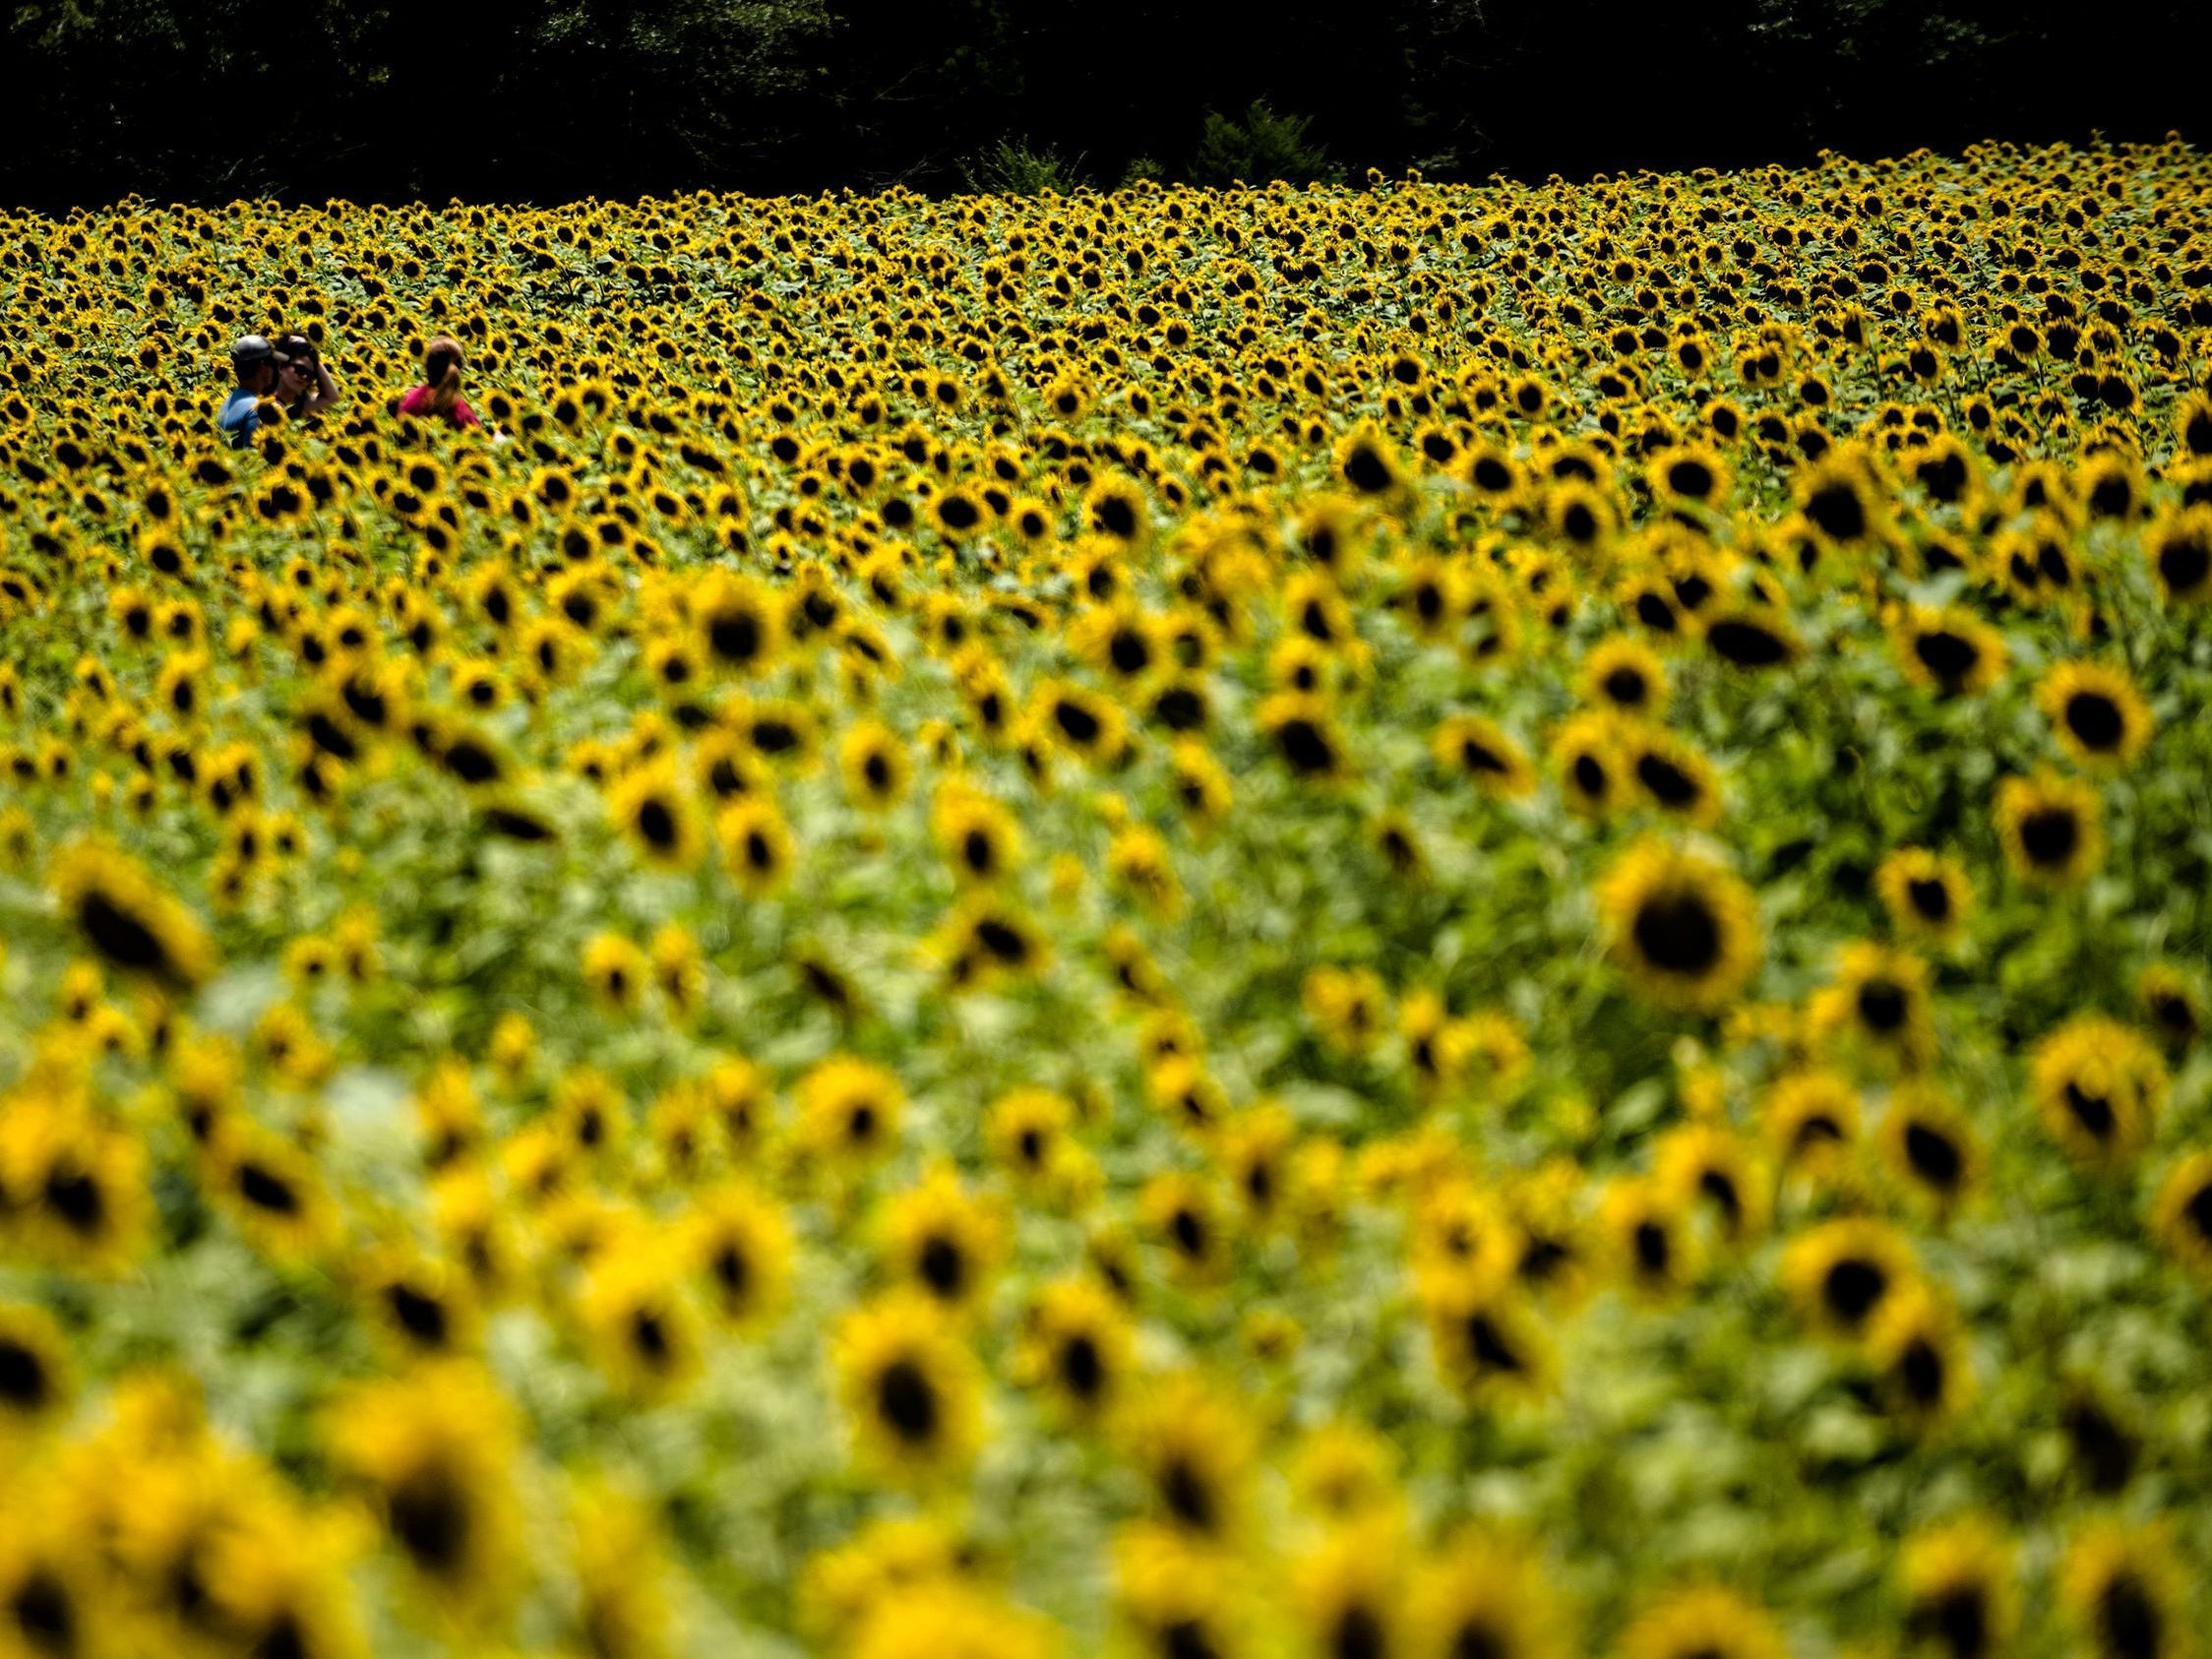 People walk through The Sunflower Field on the family farm of Todd and Kim Sheridan in Autauga County on July 18, 2017.